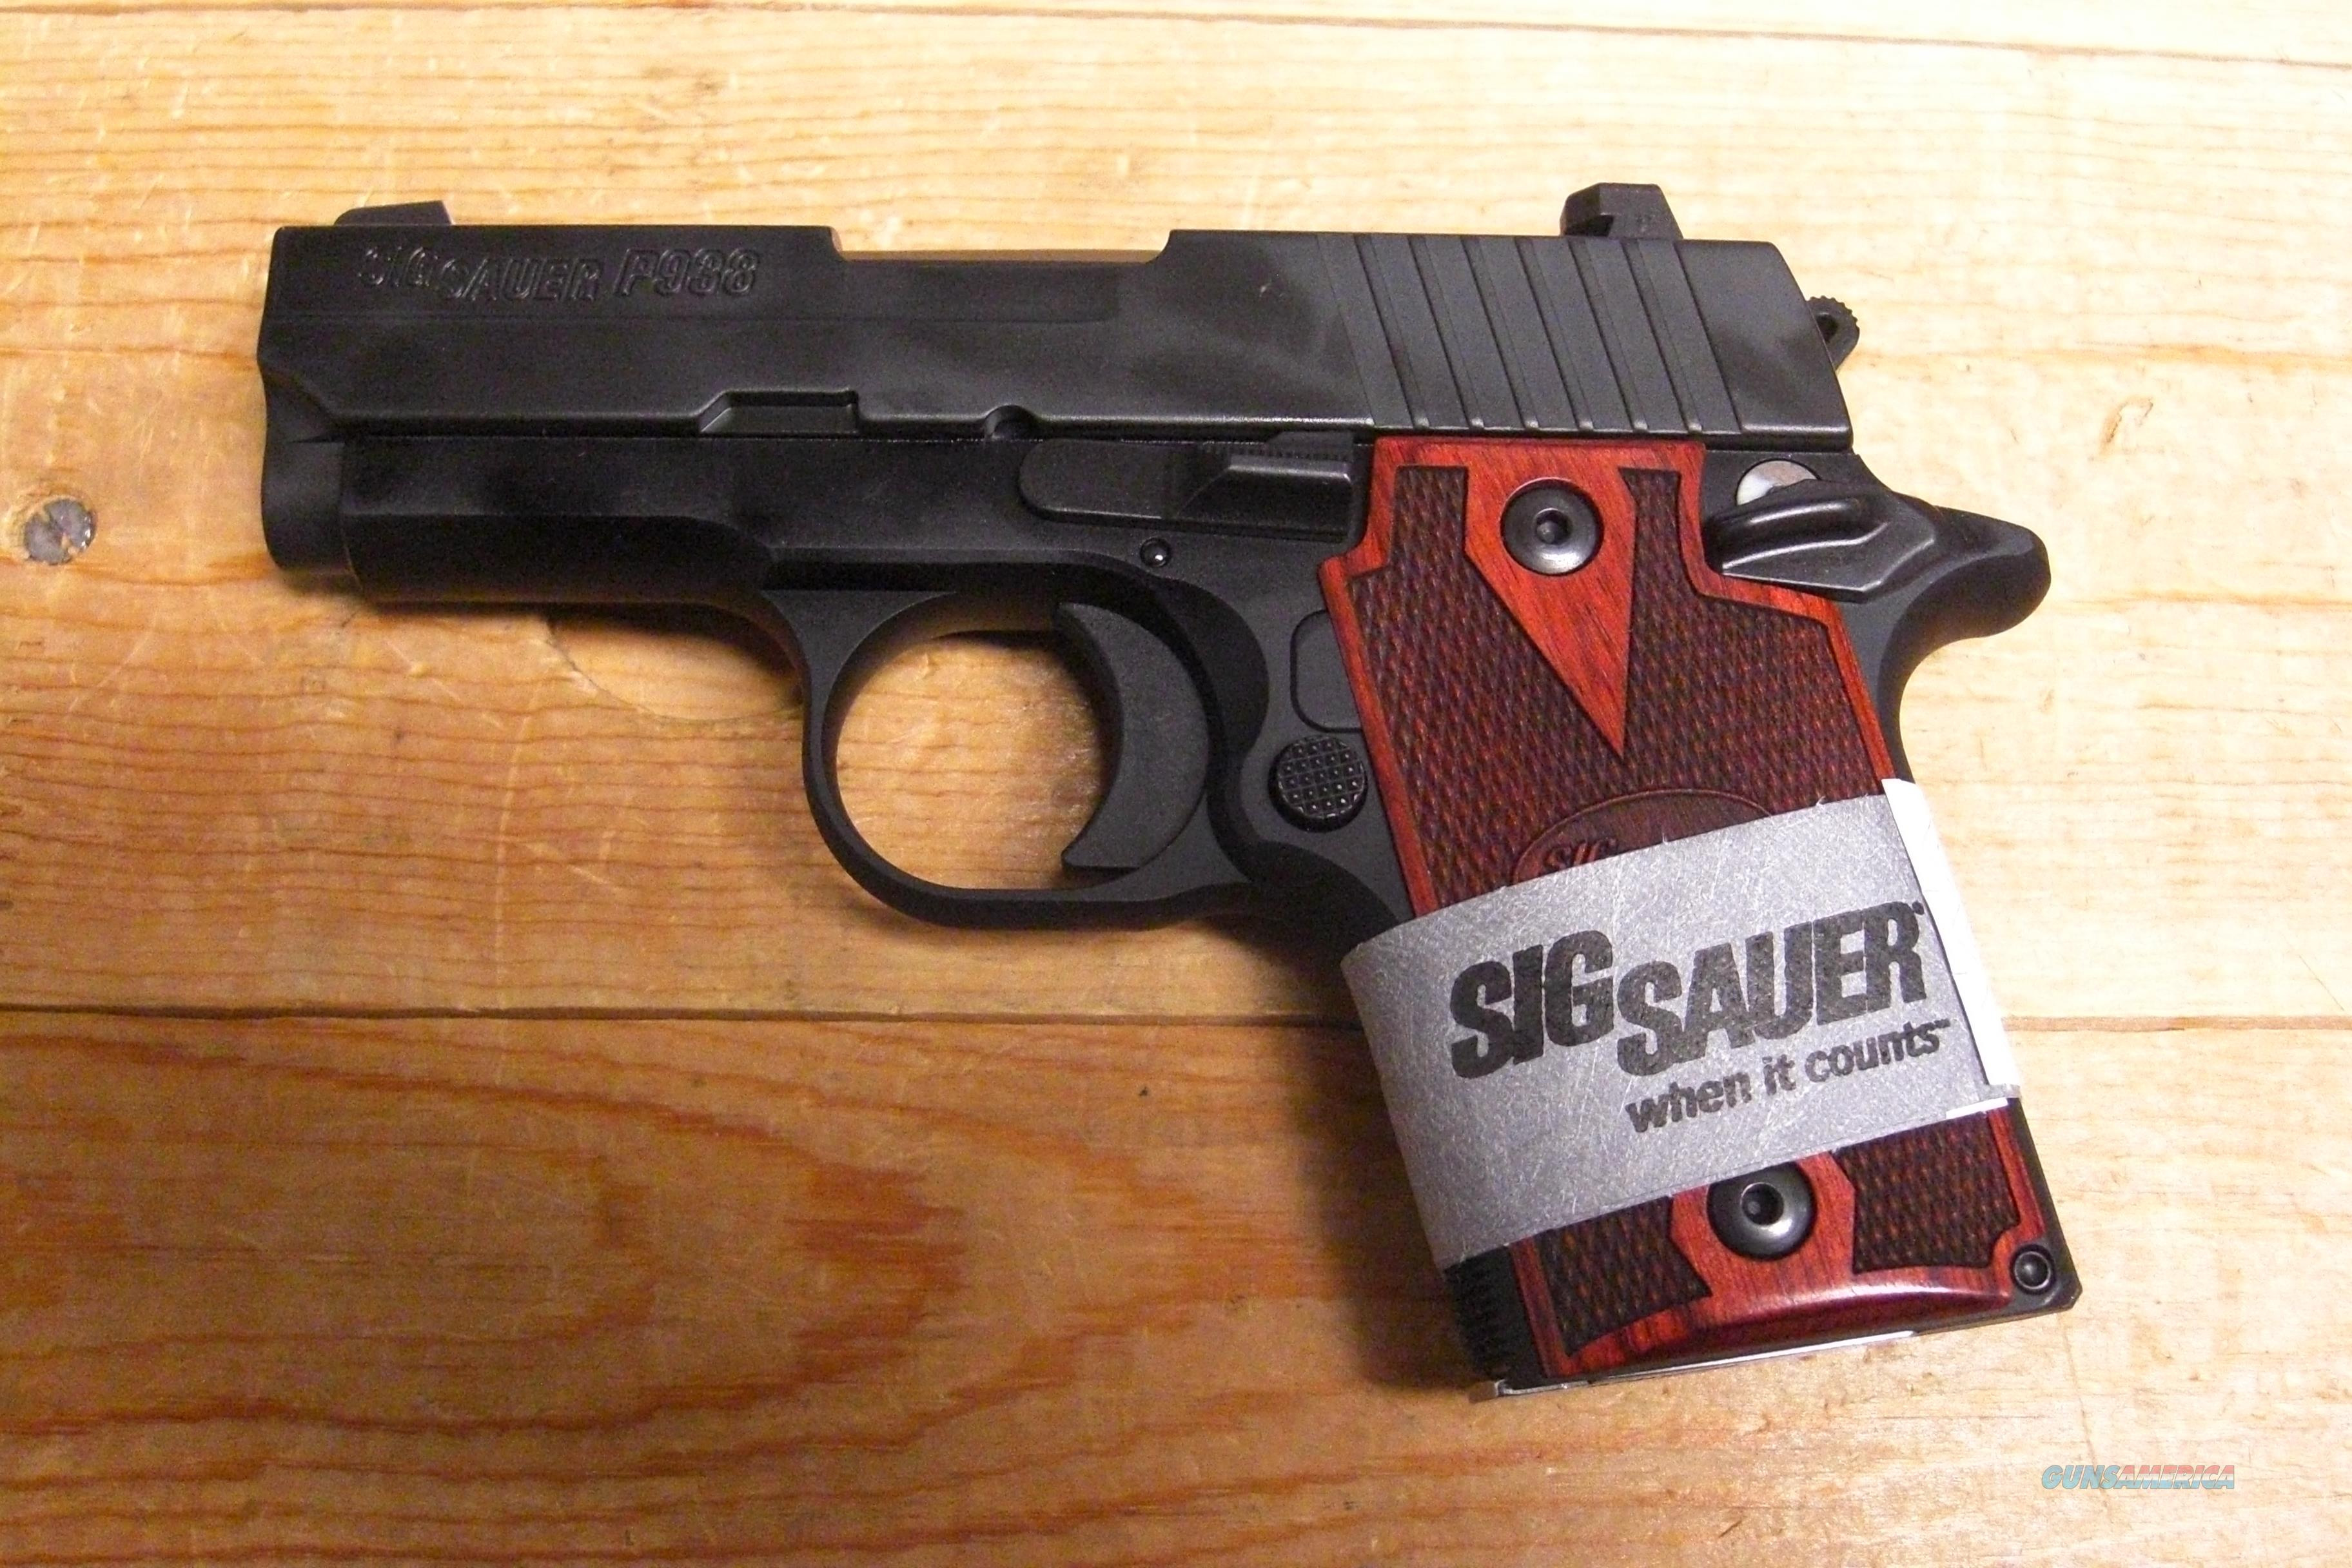 P938 w/night sights, ambi-safety  Guns > Pistols > Sig - Sauer/Sigarms Pistols > Other